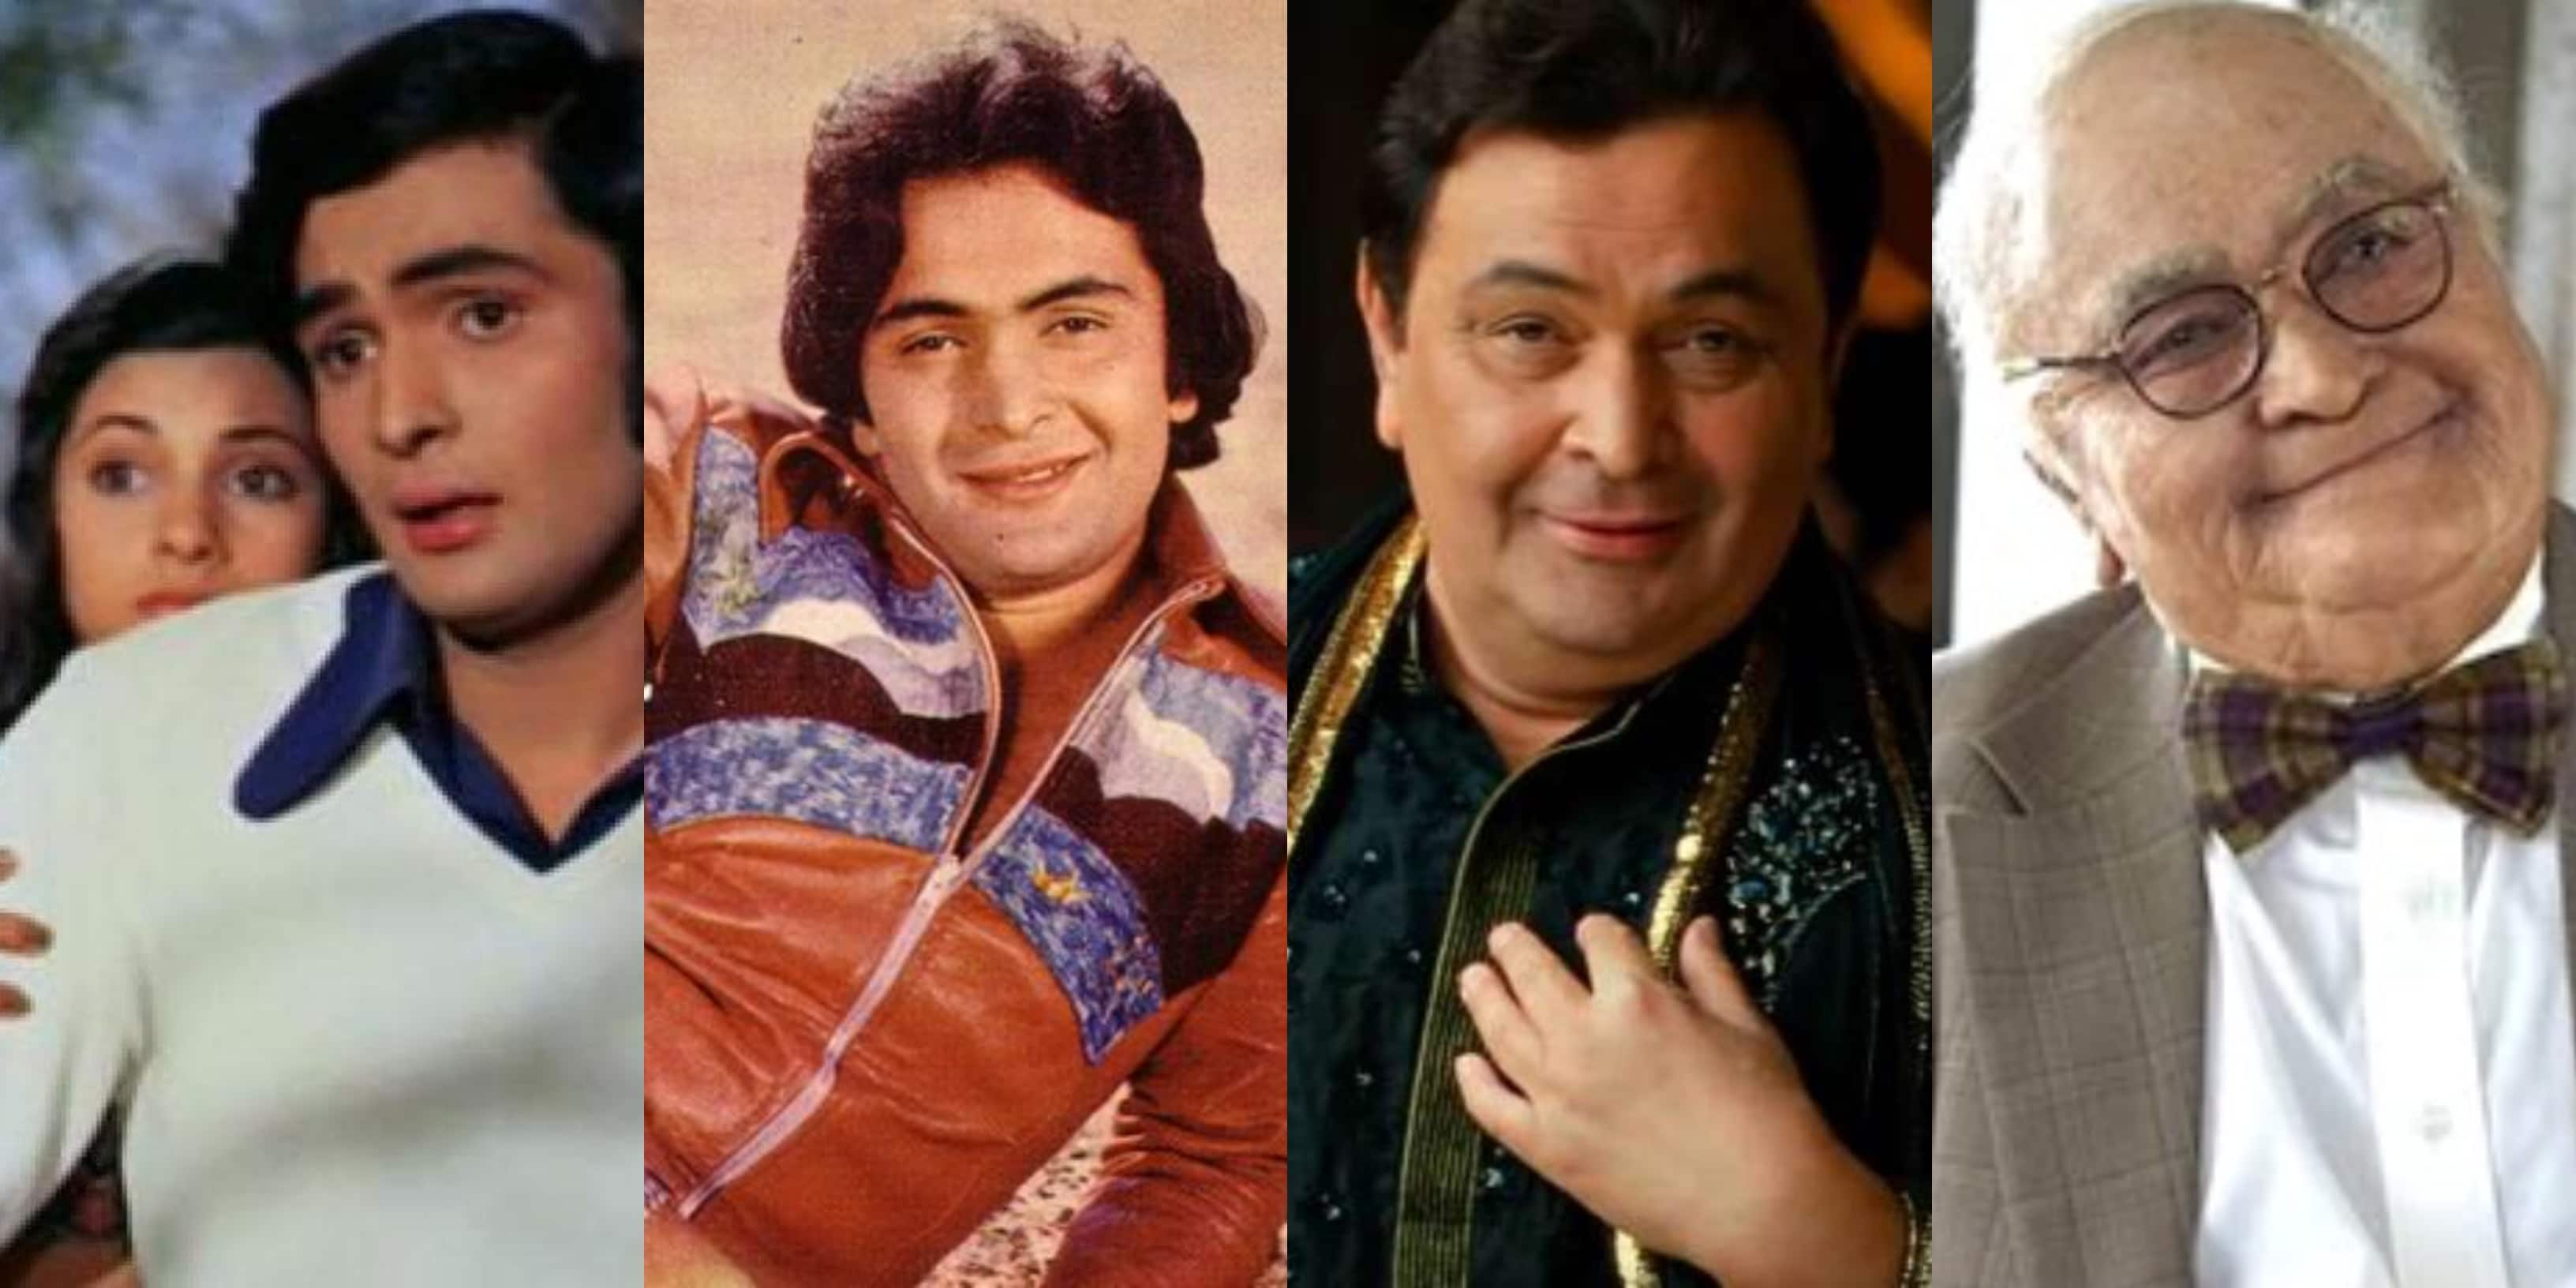 R.I.P. Rishi Kapoor: Looking Back At His Star-Studded Welcome, Wonderful Life And Exceptional Acting Career In His Own Words